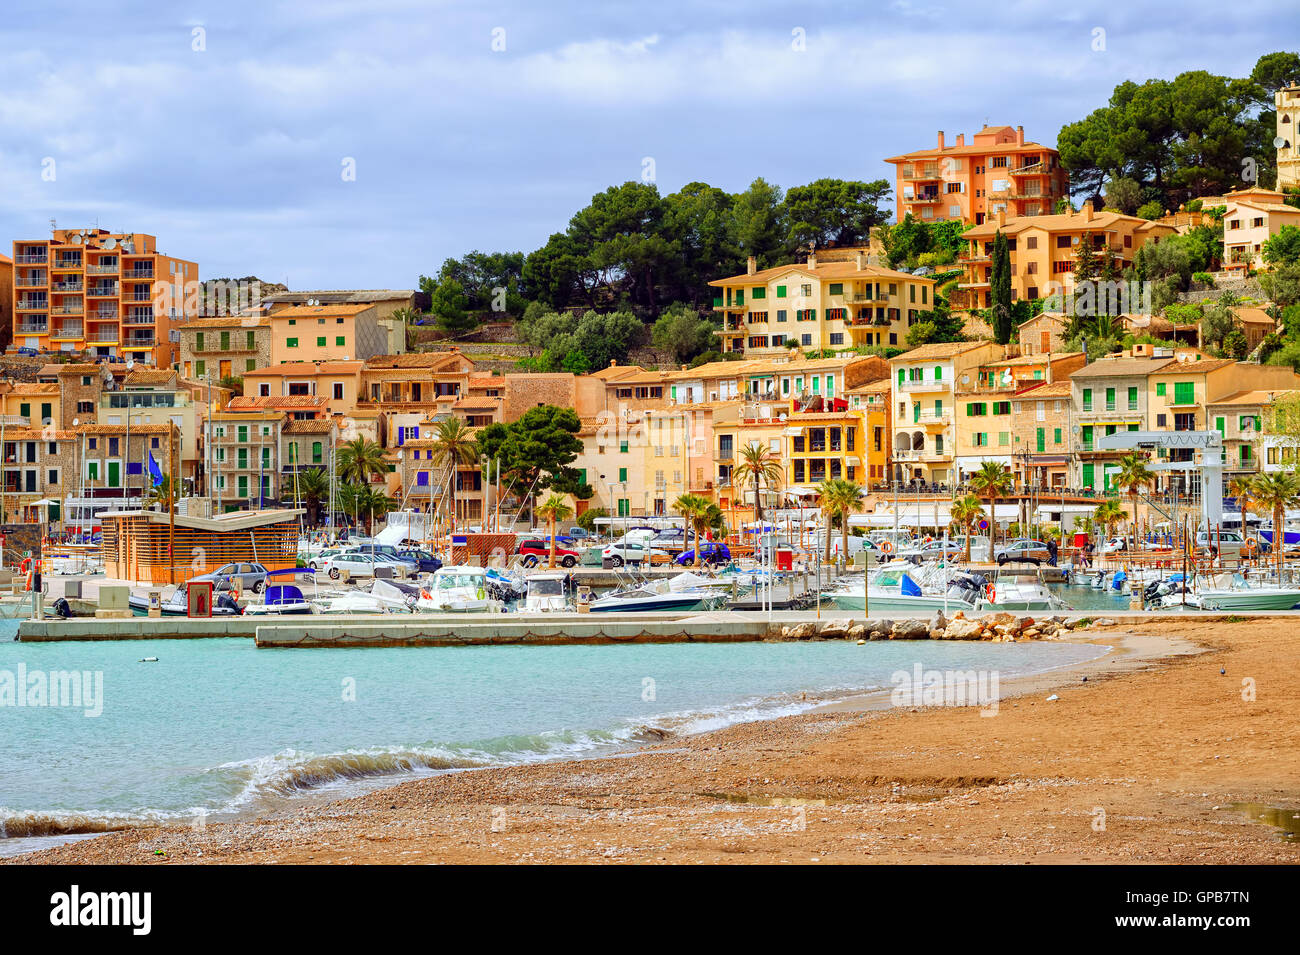 Mediterranean beach in the marina of Port Soller, Mallorca, Spain - Stock Image